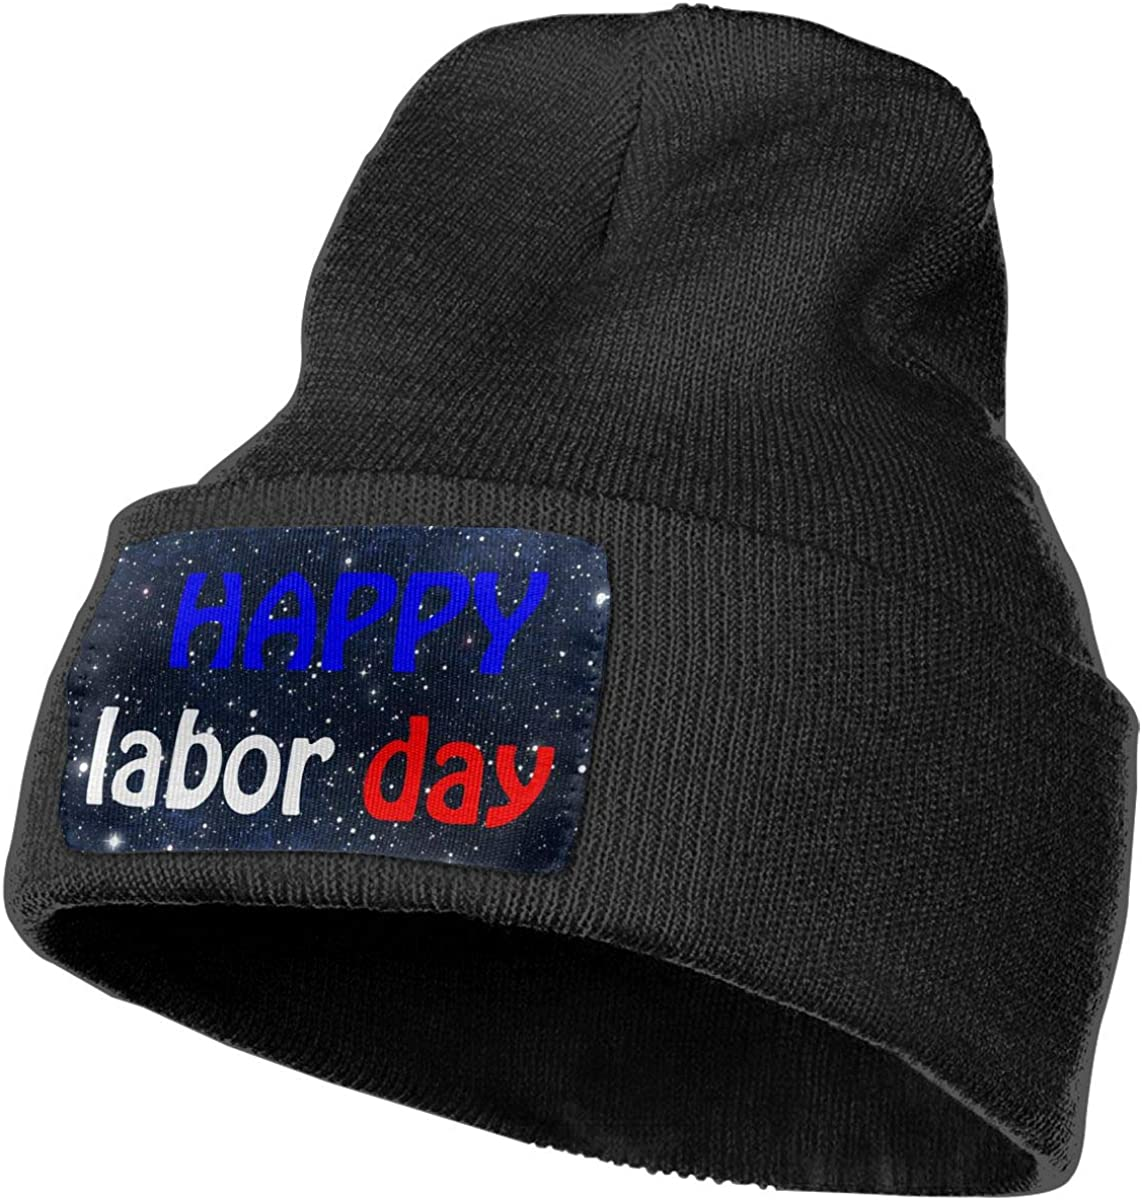 COLLJL-8 Unisex Happy Labor Day Outdoor Warm Knit Beanies Hat Soft Winter Knit Caps